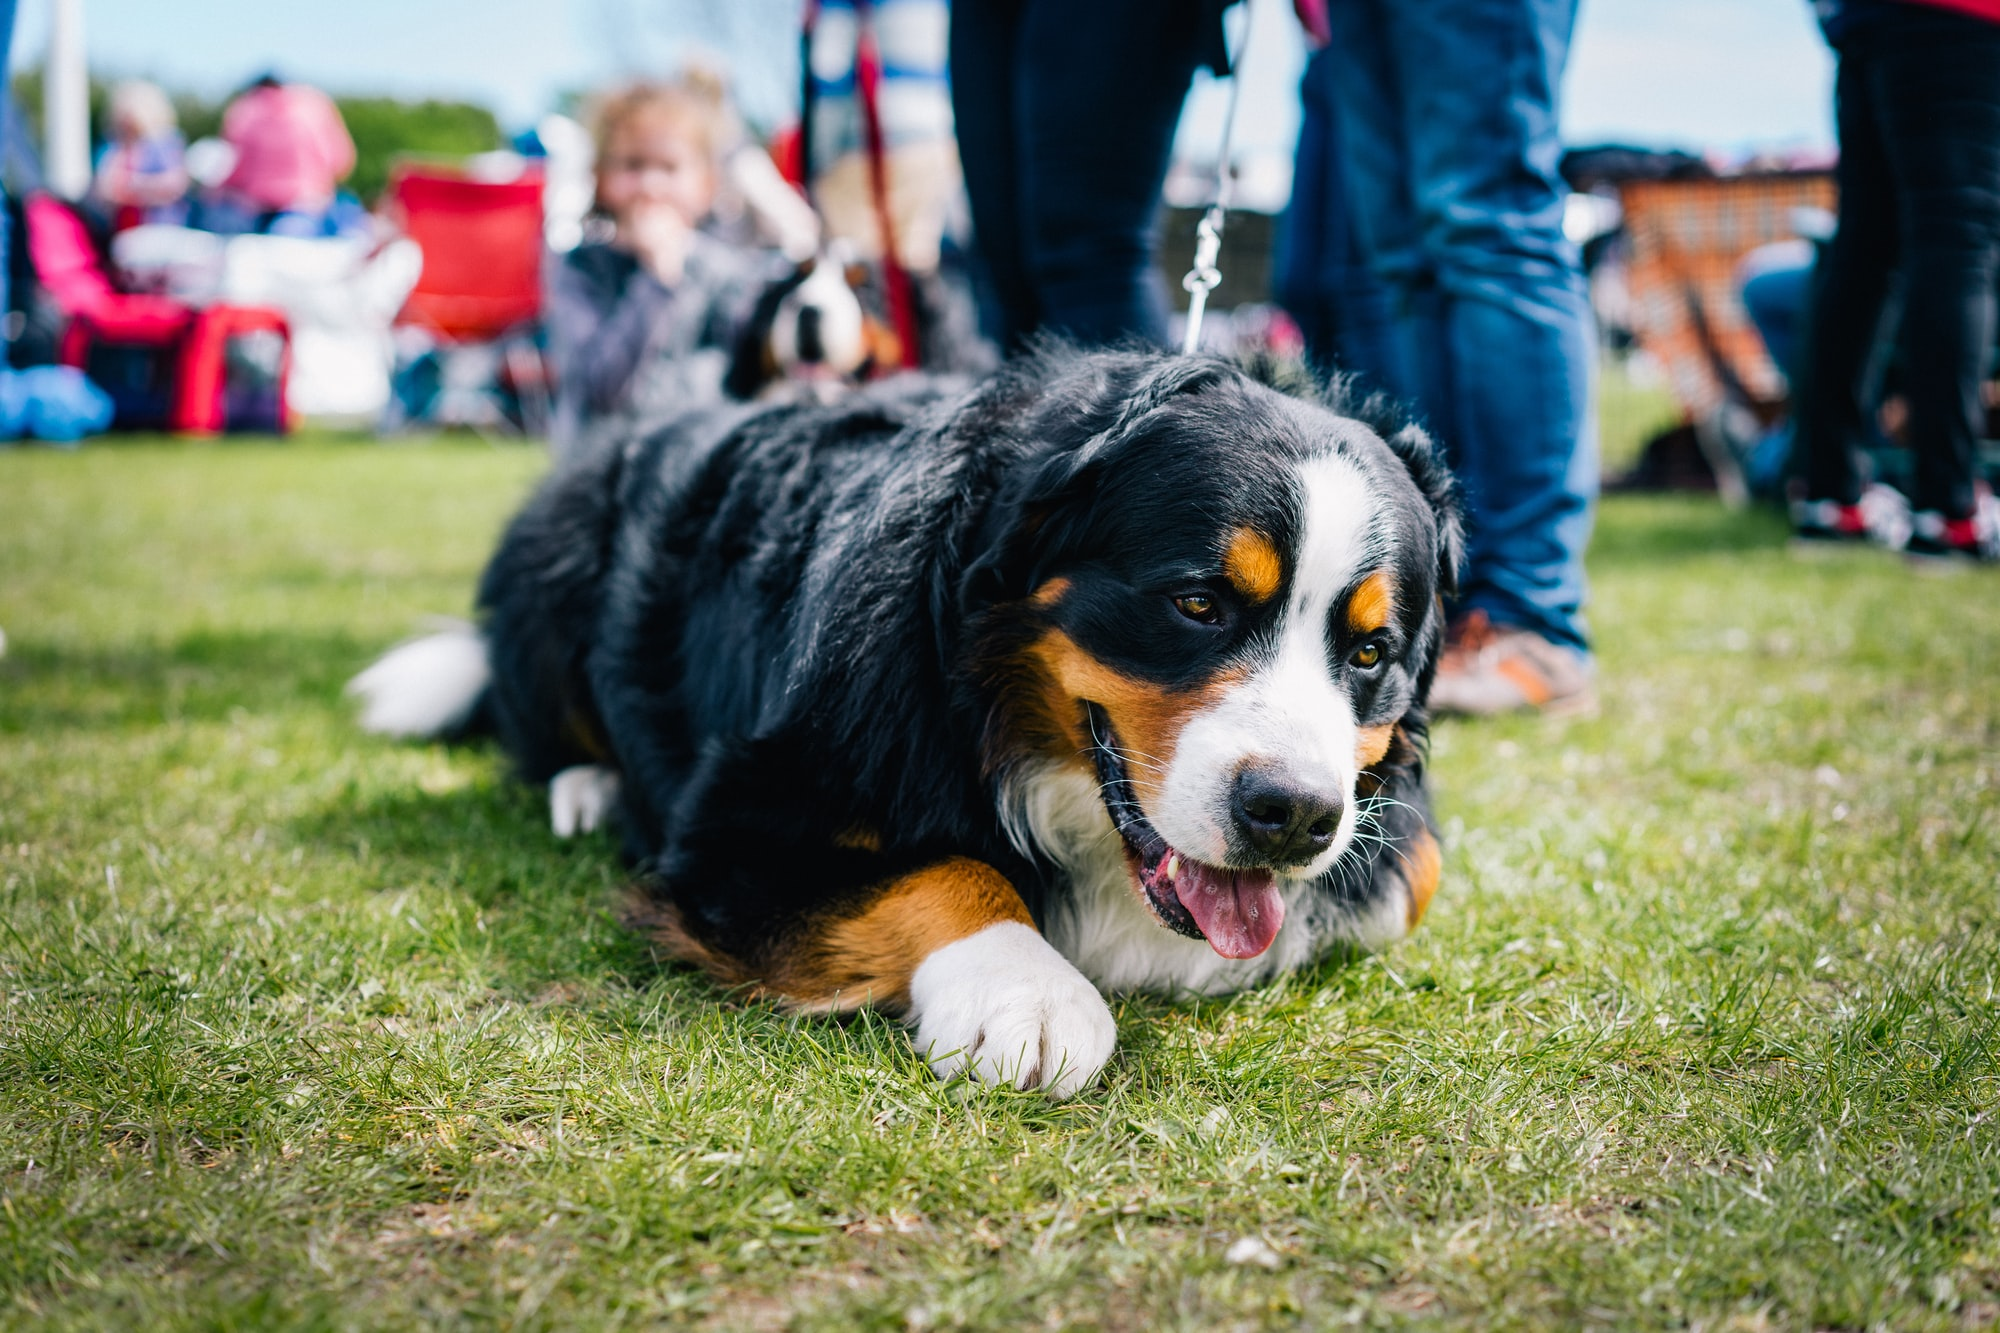 Bernese Mountain Dog at a dog show in Newtownards, Northern Ireland